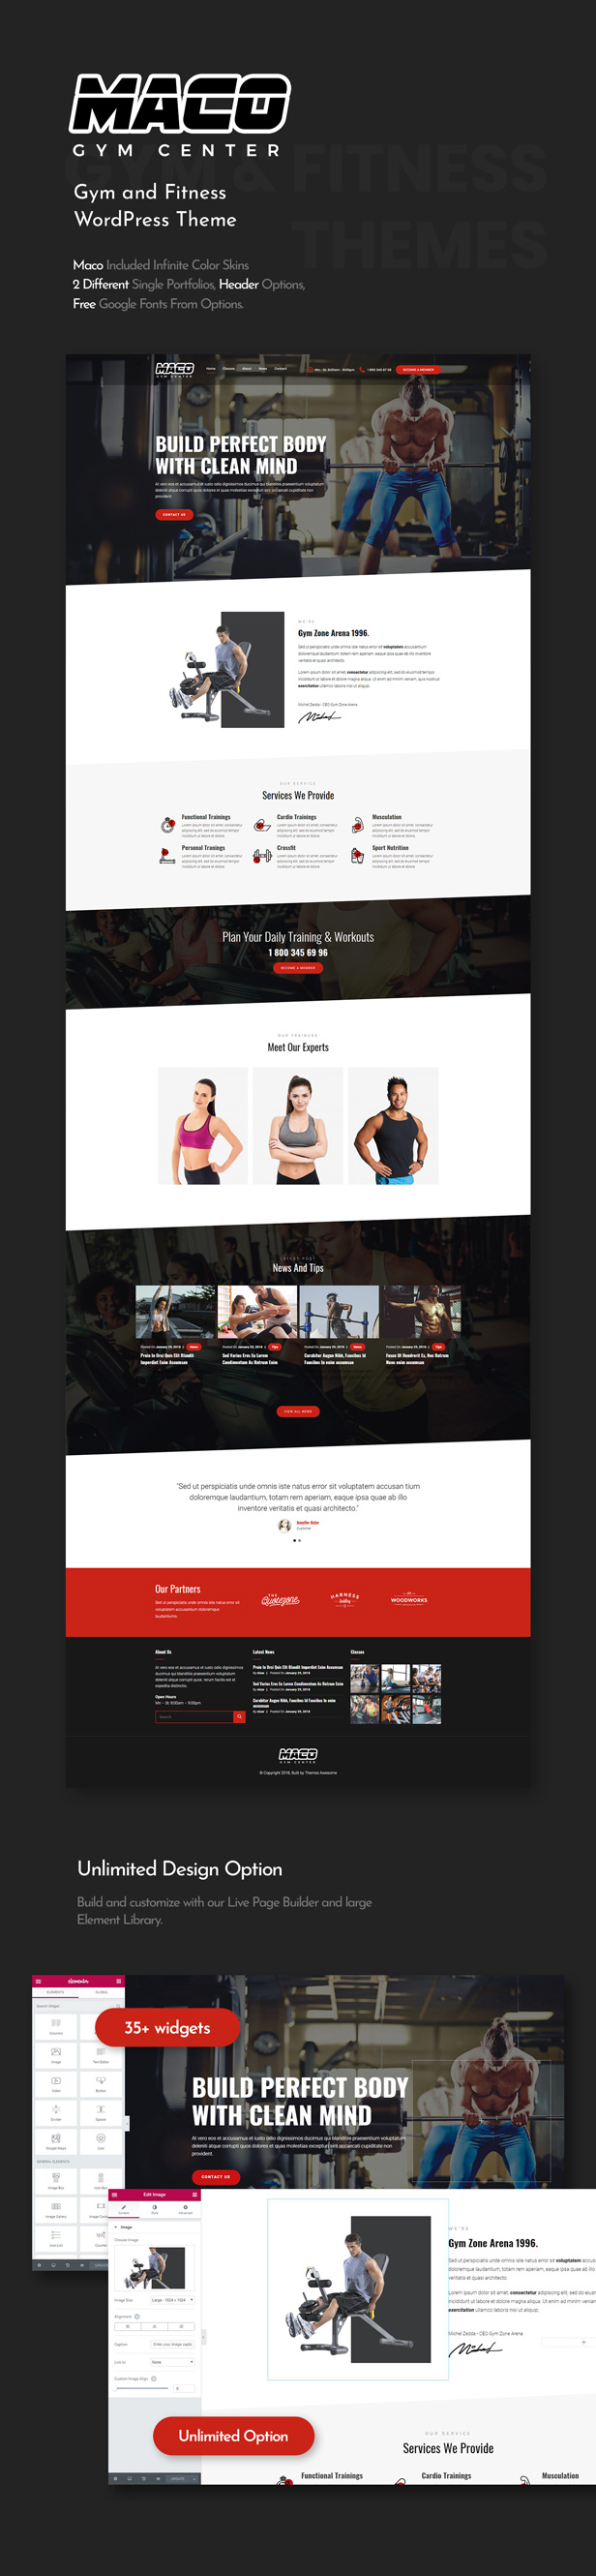 Maco | Gym and Fitness WordPress Theme by themesawesome | ThemeForest